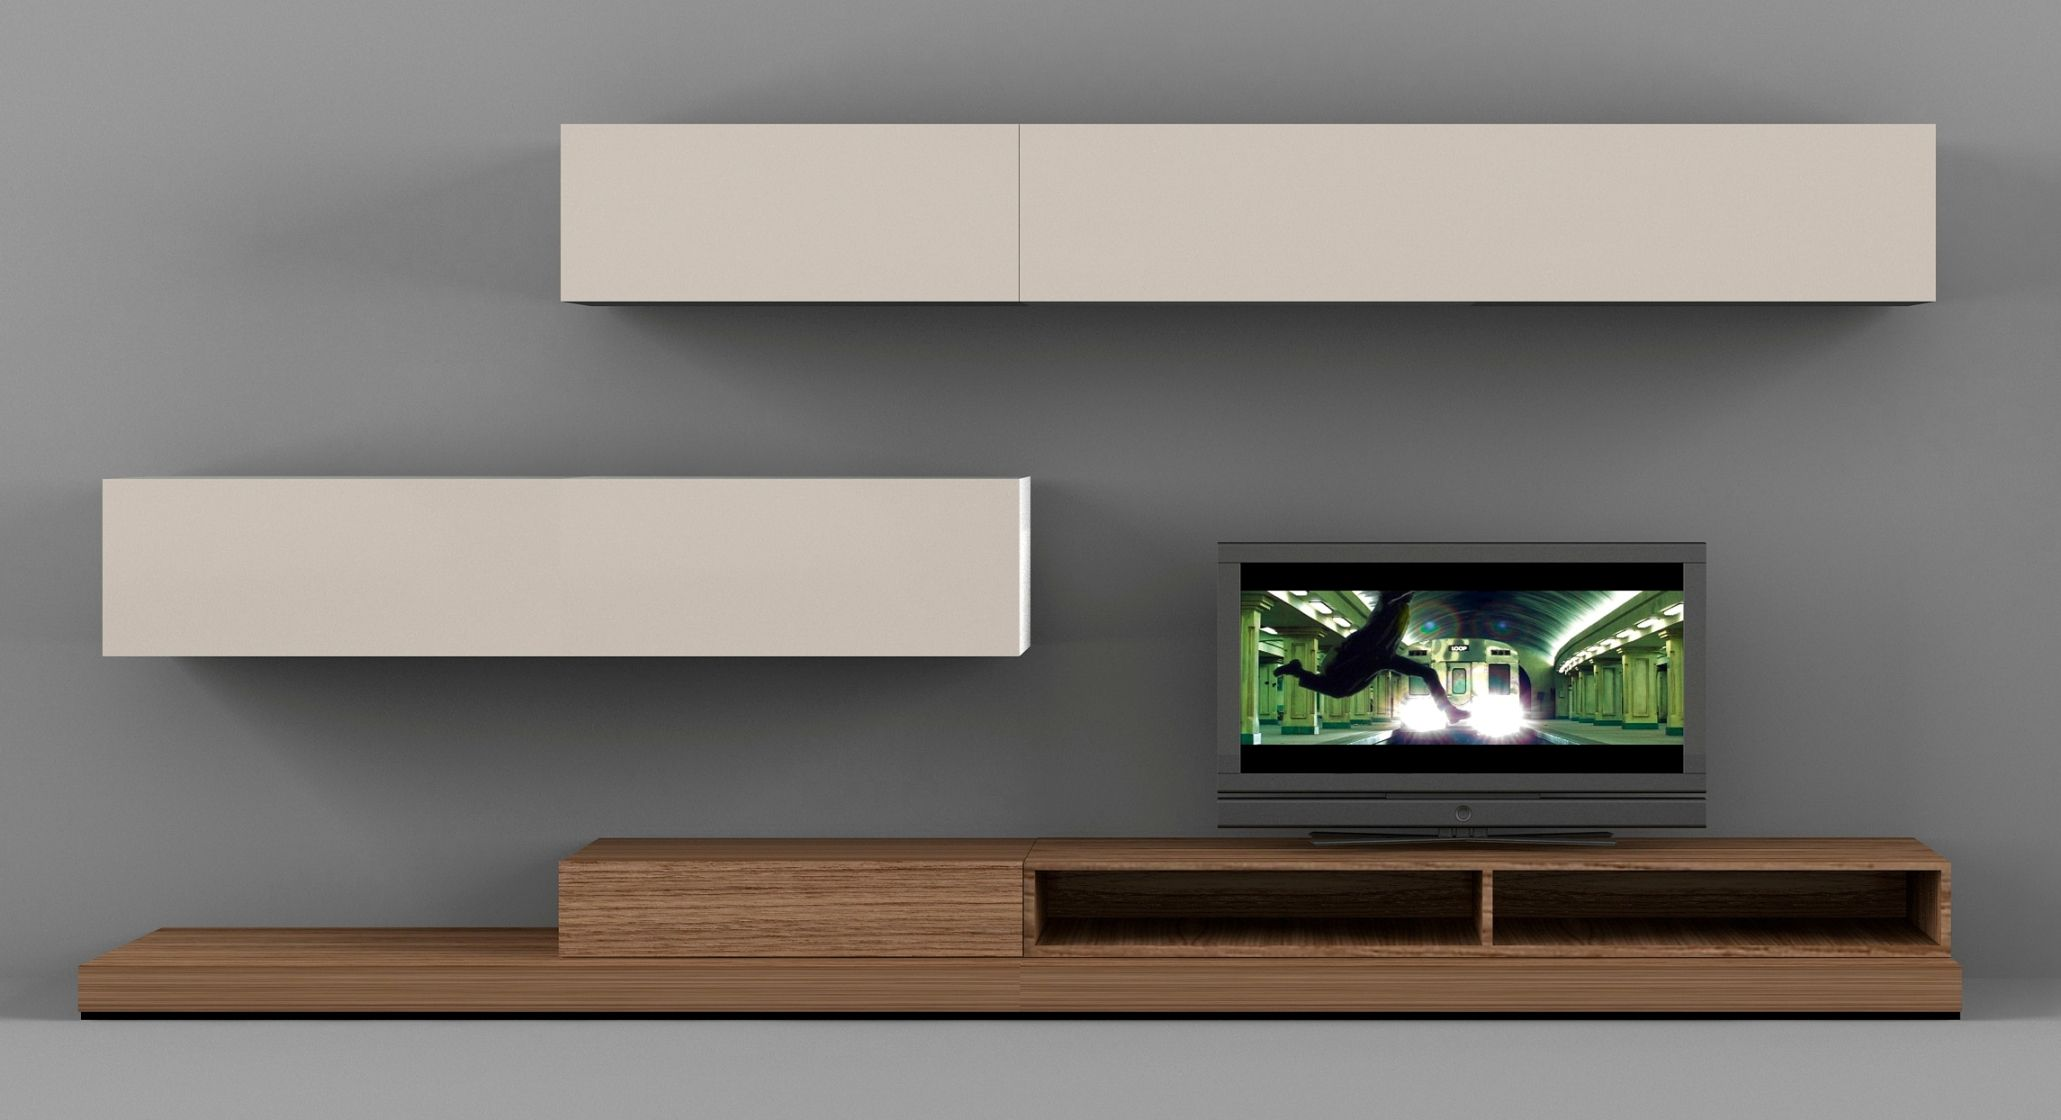 Wall Units Designs Decorations  Diy Home Decor Ideas Tv Wall Units Design Ideas For